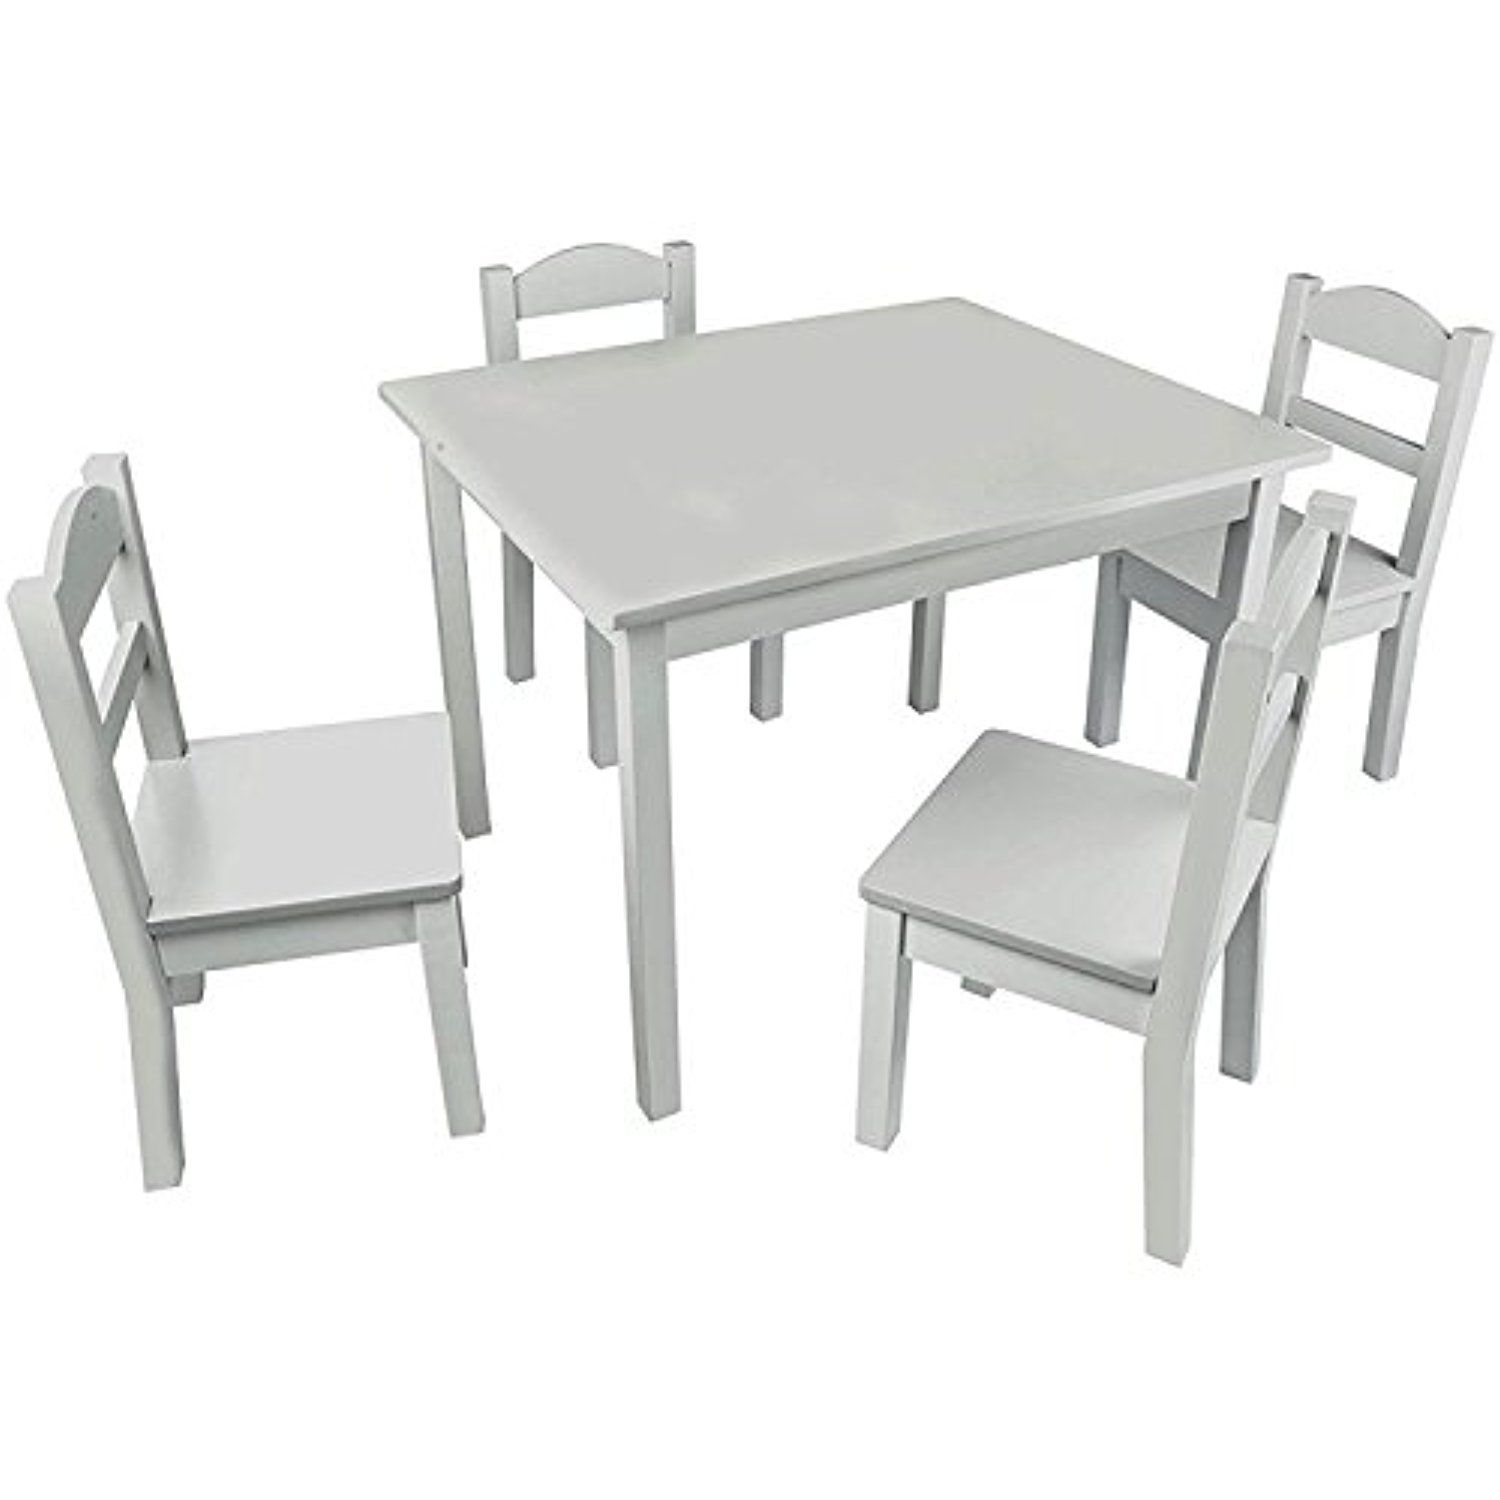 Tremendous Pidoko Kids Wooden Table And Chairs Set Grey Includes 4 Lamtechconsult Wood Chair Design Ideas Lamtechconsultcom